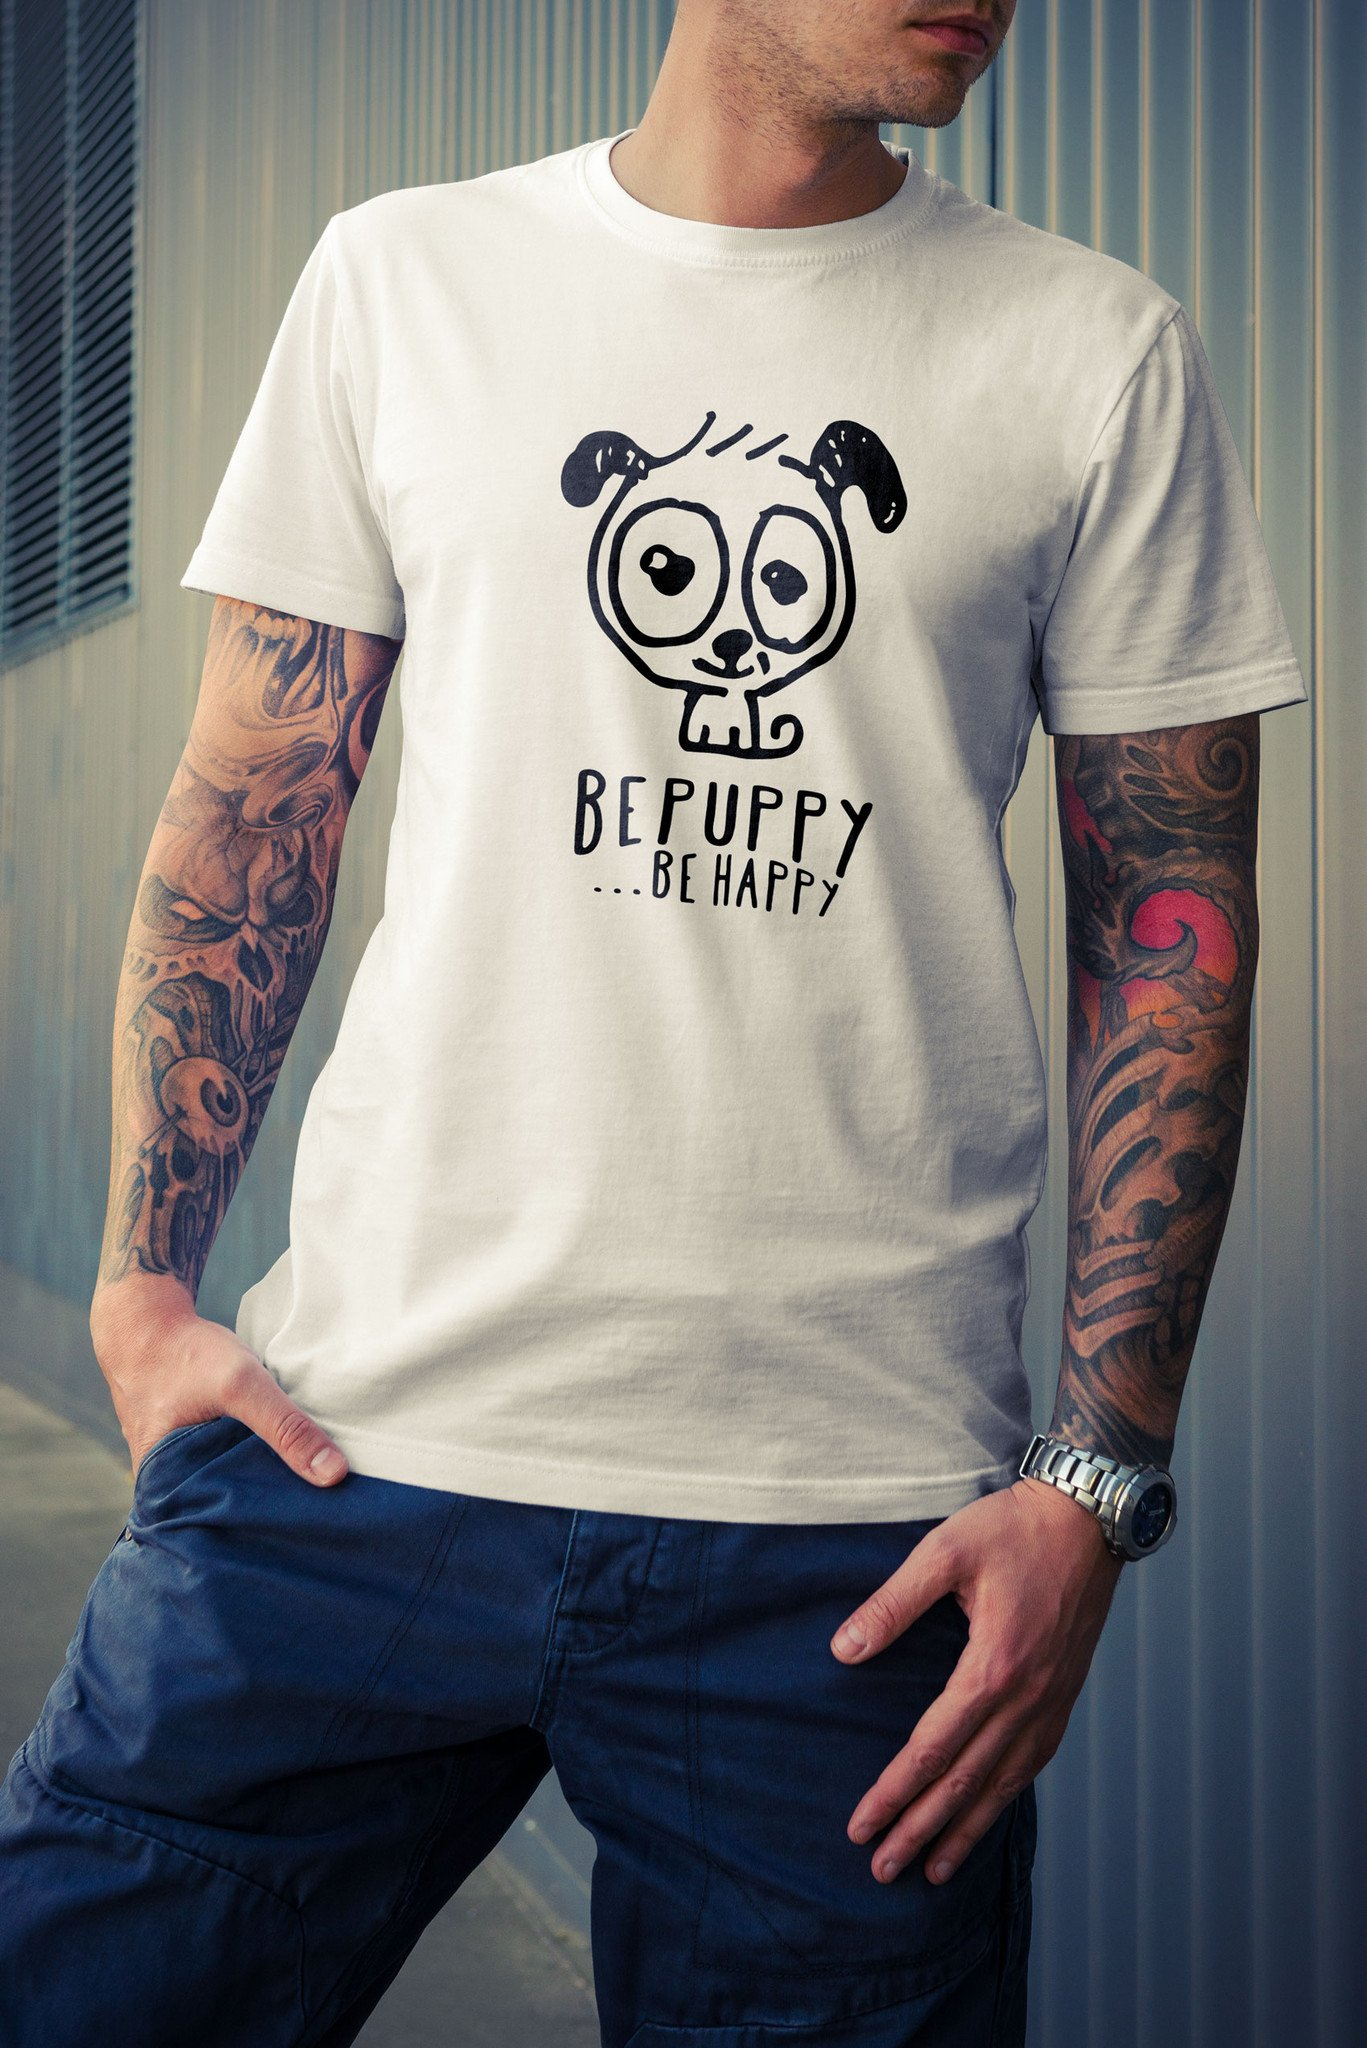 T-shirt uomo online bepuppy be happy! Dog lover t-shirts - BEPUPPY